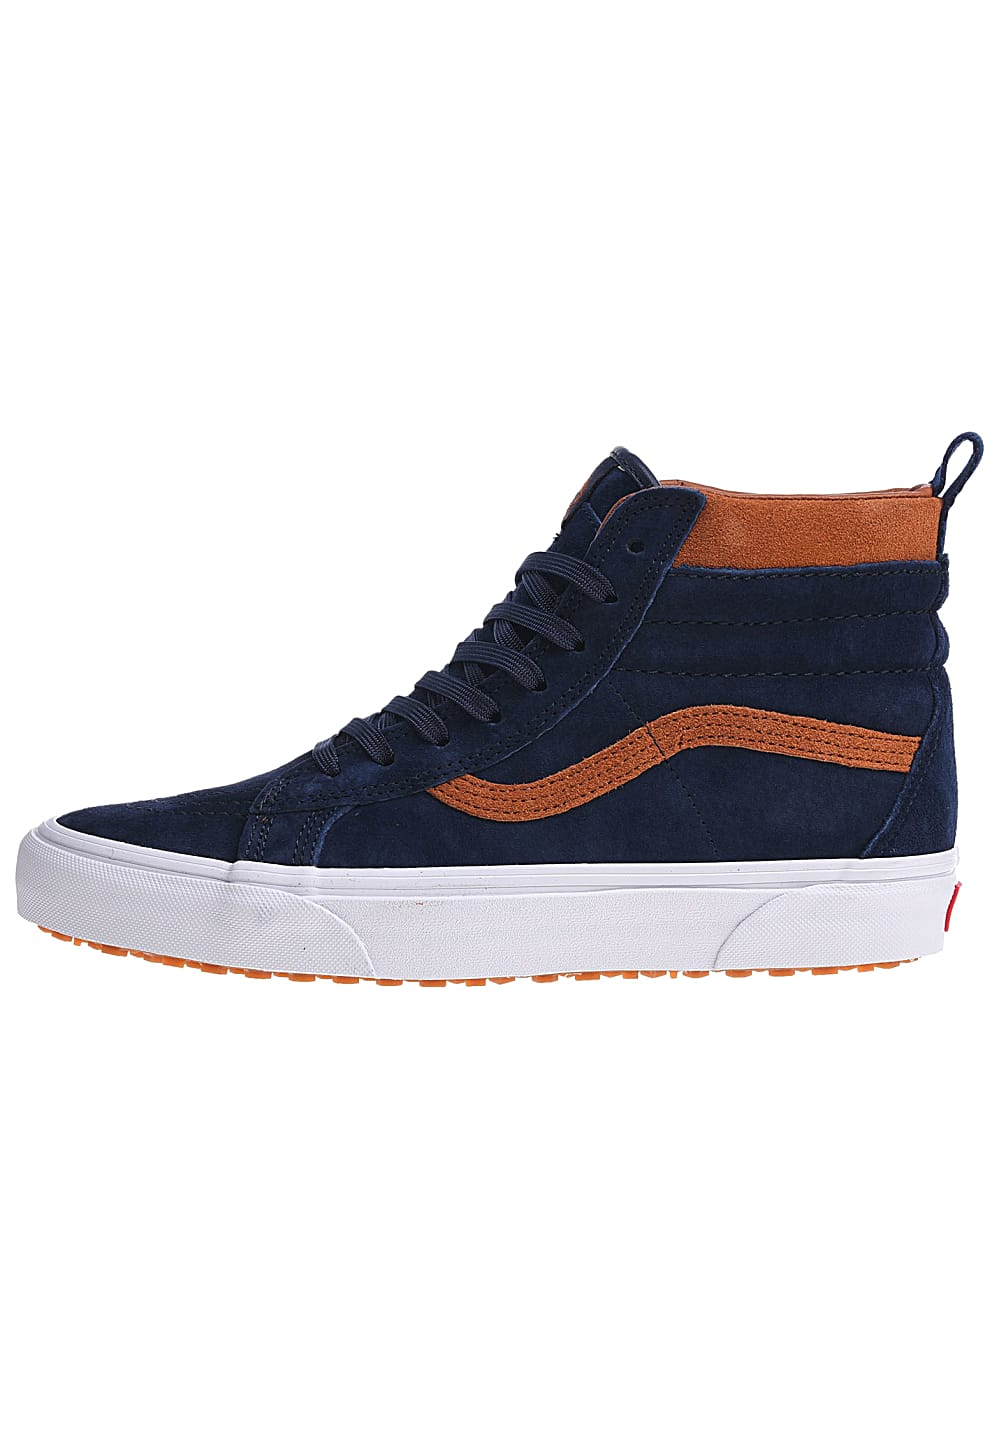 817fbb3bad VANS Sk8-Hi Mte - Sneaker - Blau - Planet Sports